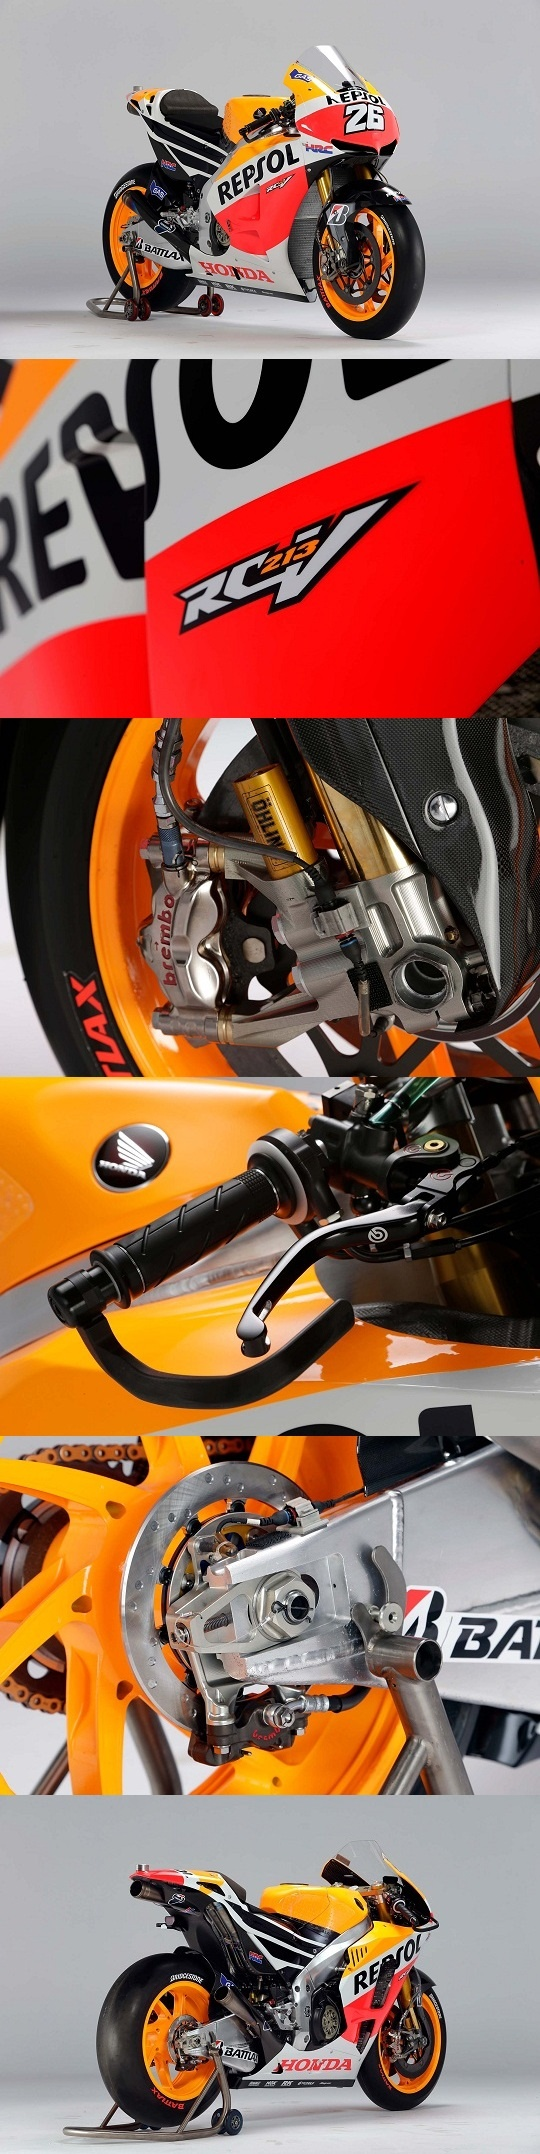 2013 Honda Repsol need this for those hot days